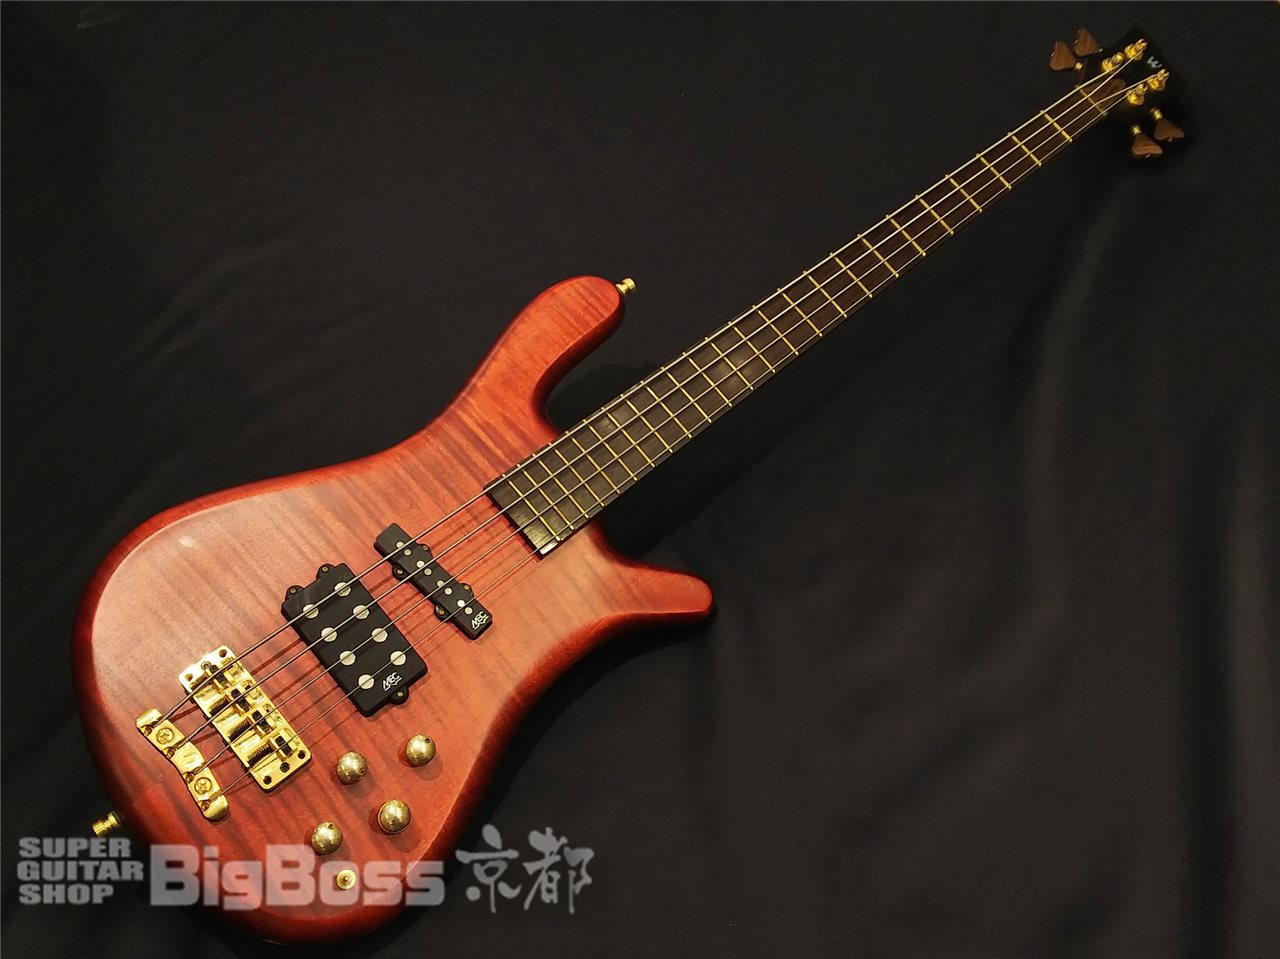 【即納可能】Warwick(ワーウィック) Custom Shop Streamer Jazzman WW SHIP G / Burgundy Red Transparent Satin Maple